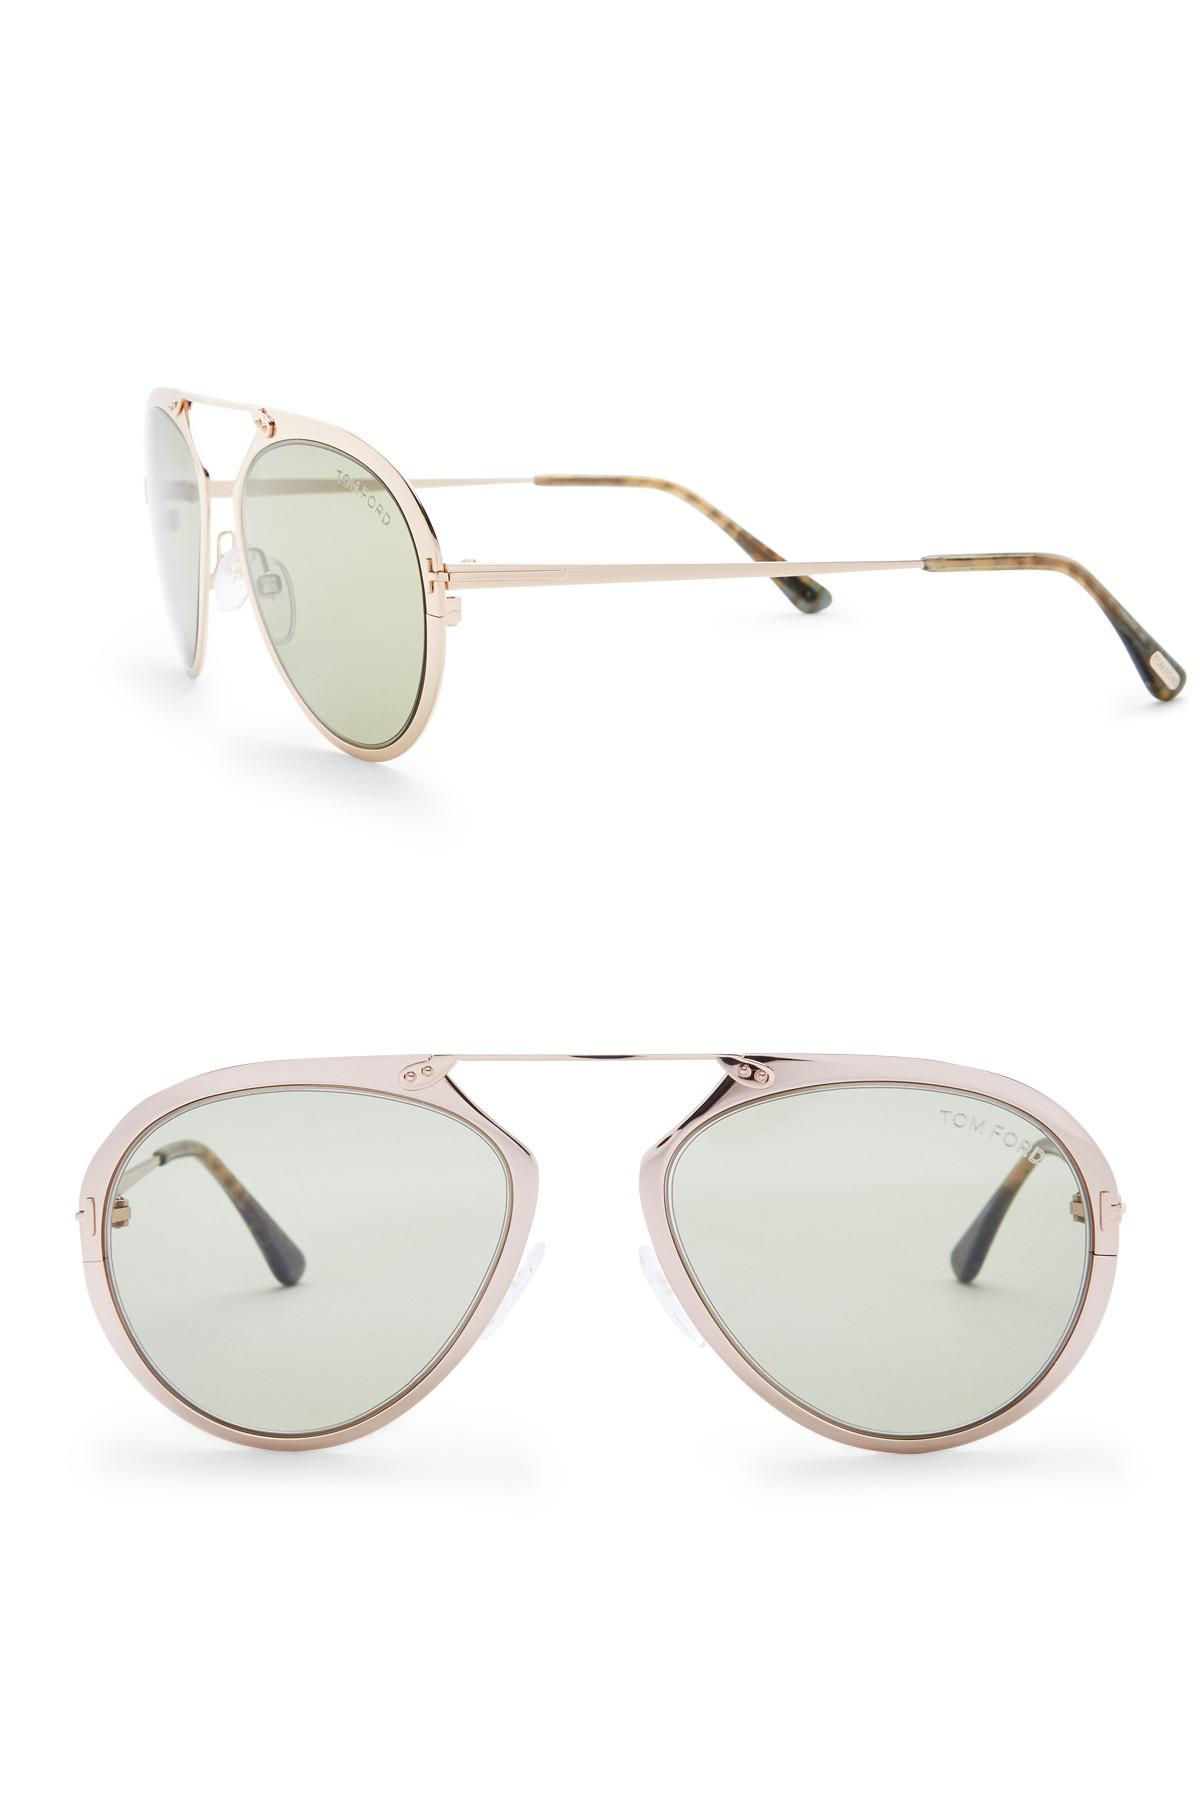 c150fb6ec4 Tom Ford Dashel 53mm Modified Aviator Sunglasses in Metallic - Lyst